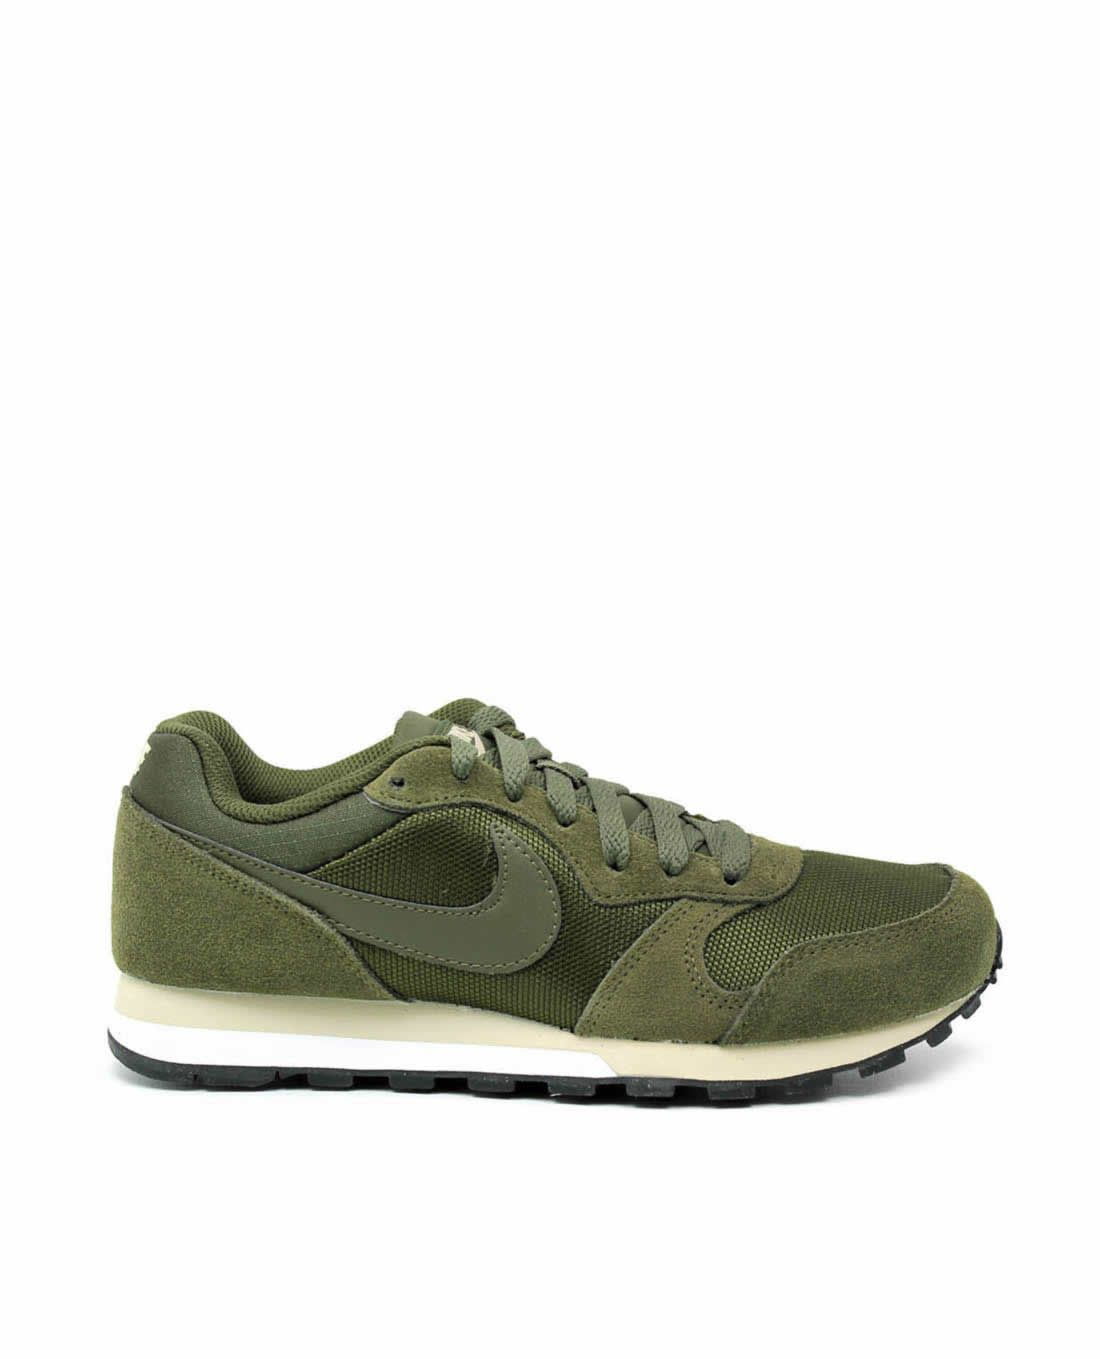 Zapatillas NIKE MD RUNNER 2 kaki 749869 | zapatillas